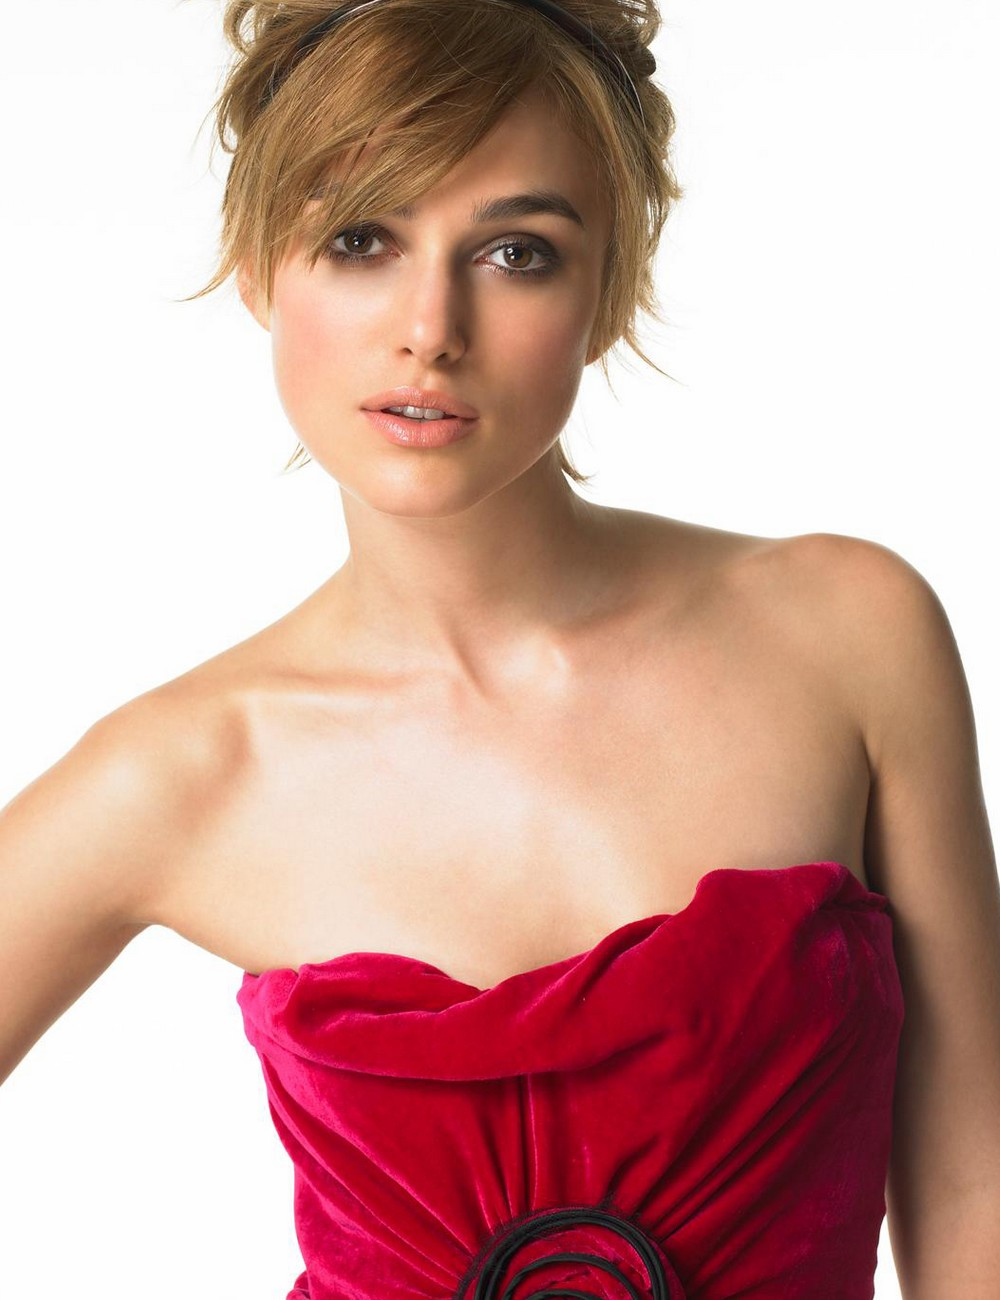 Keira Knightley Weight Gain 2013